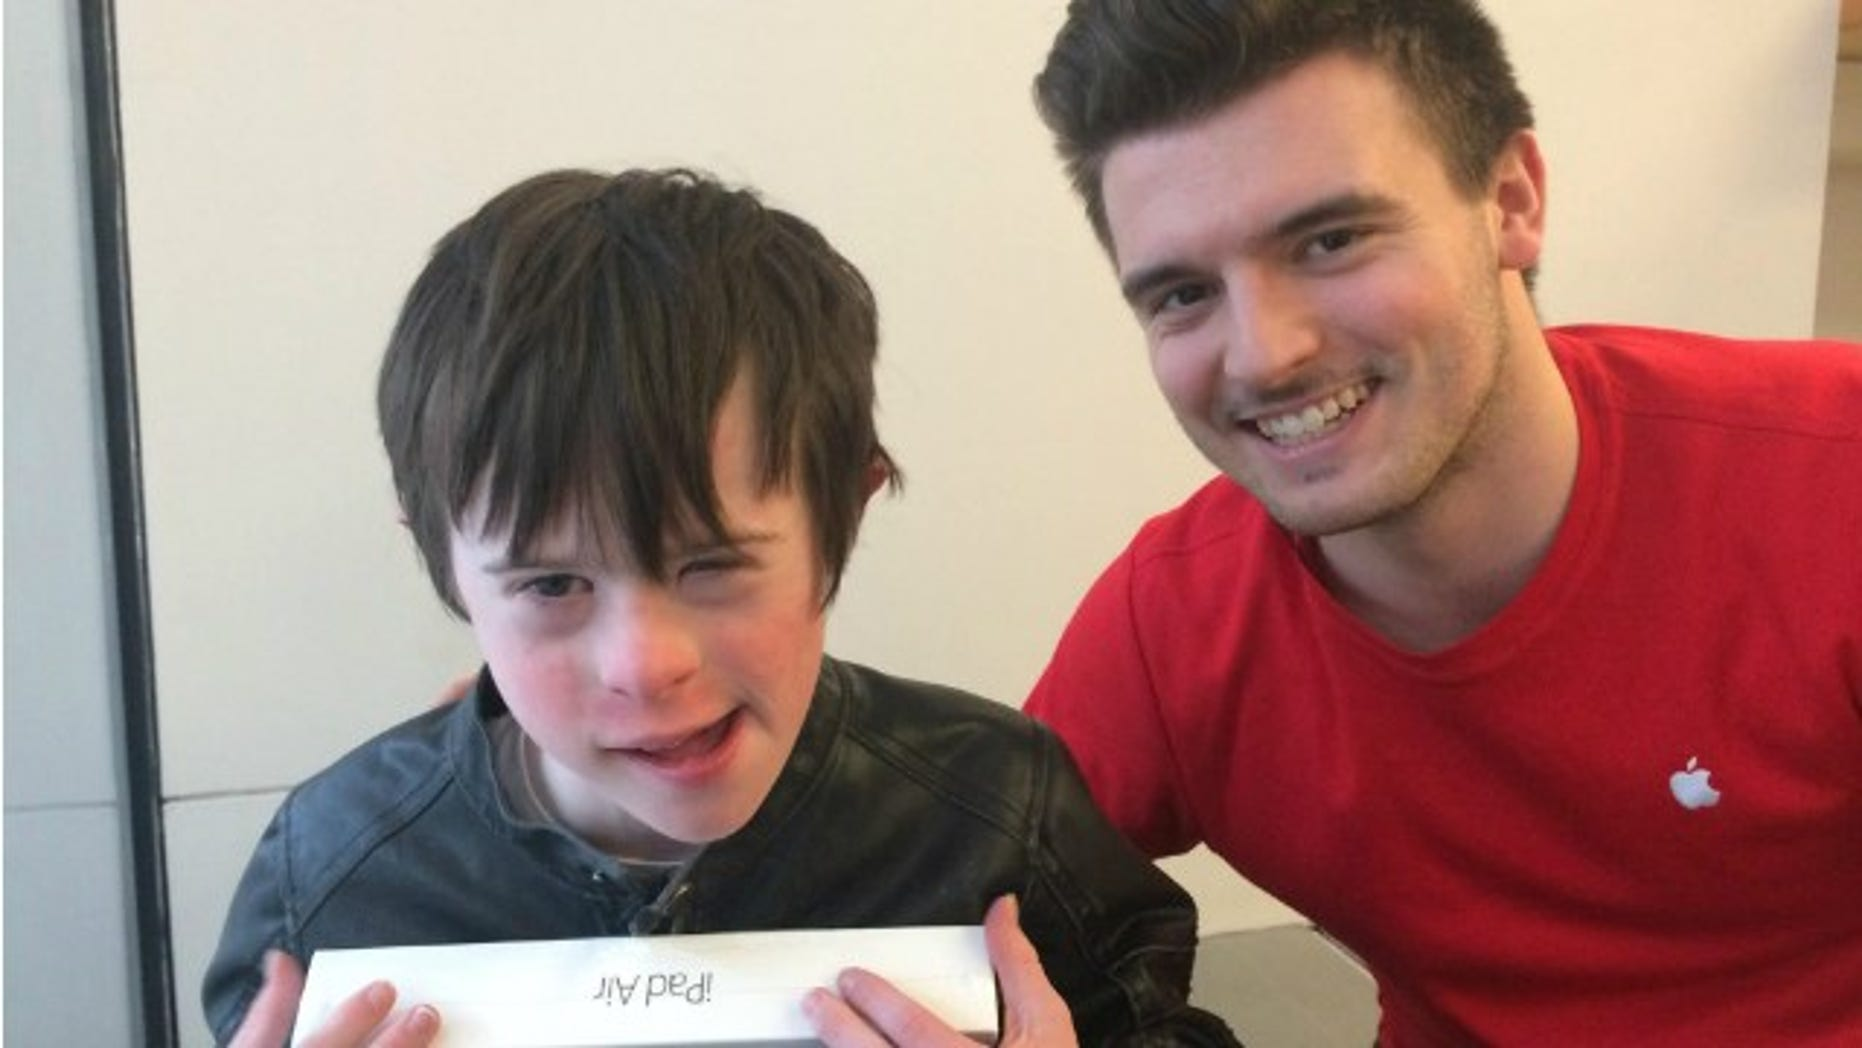 James Rink, 9, poses with Apple Store employee Andrew Wall. Wall helped Rink set up his new iPad on the floor after Rink accidentally ran into a glass wall and fell.